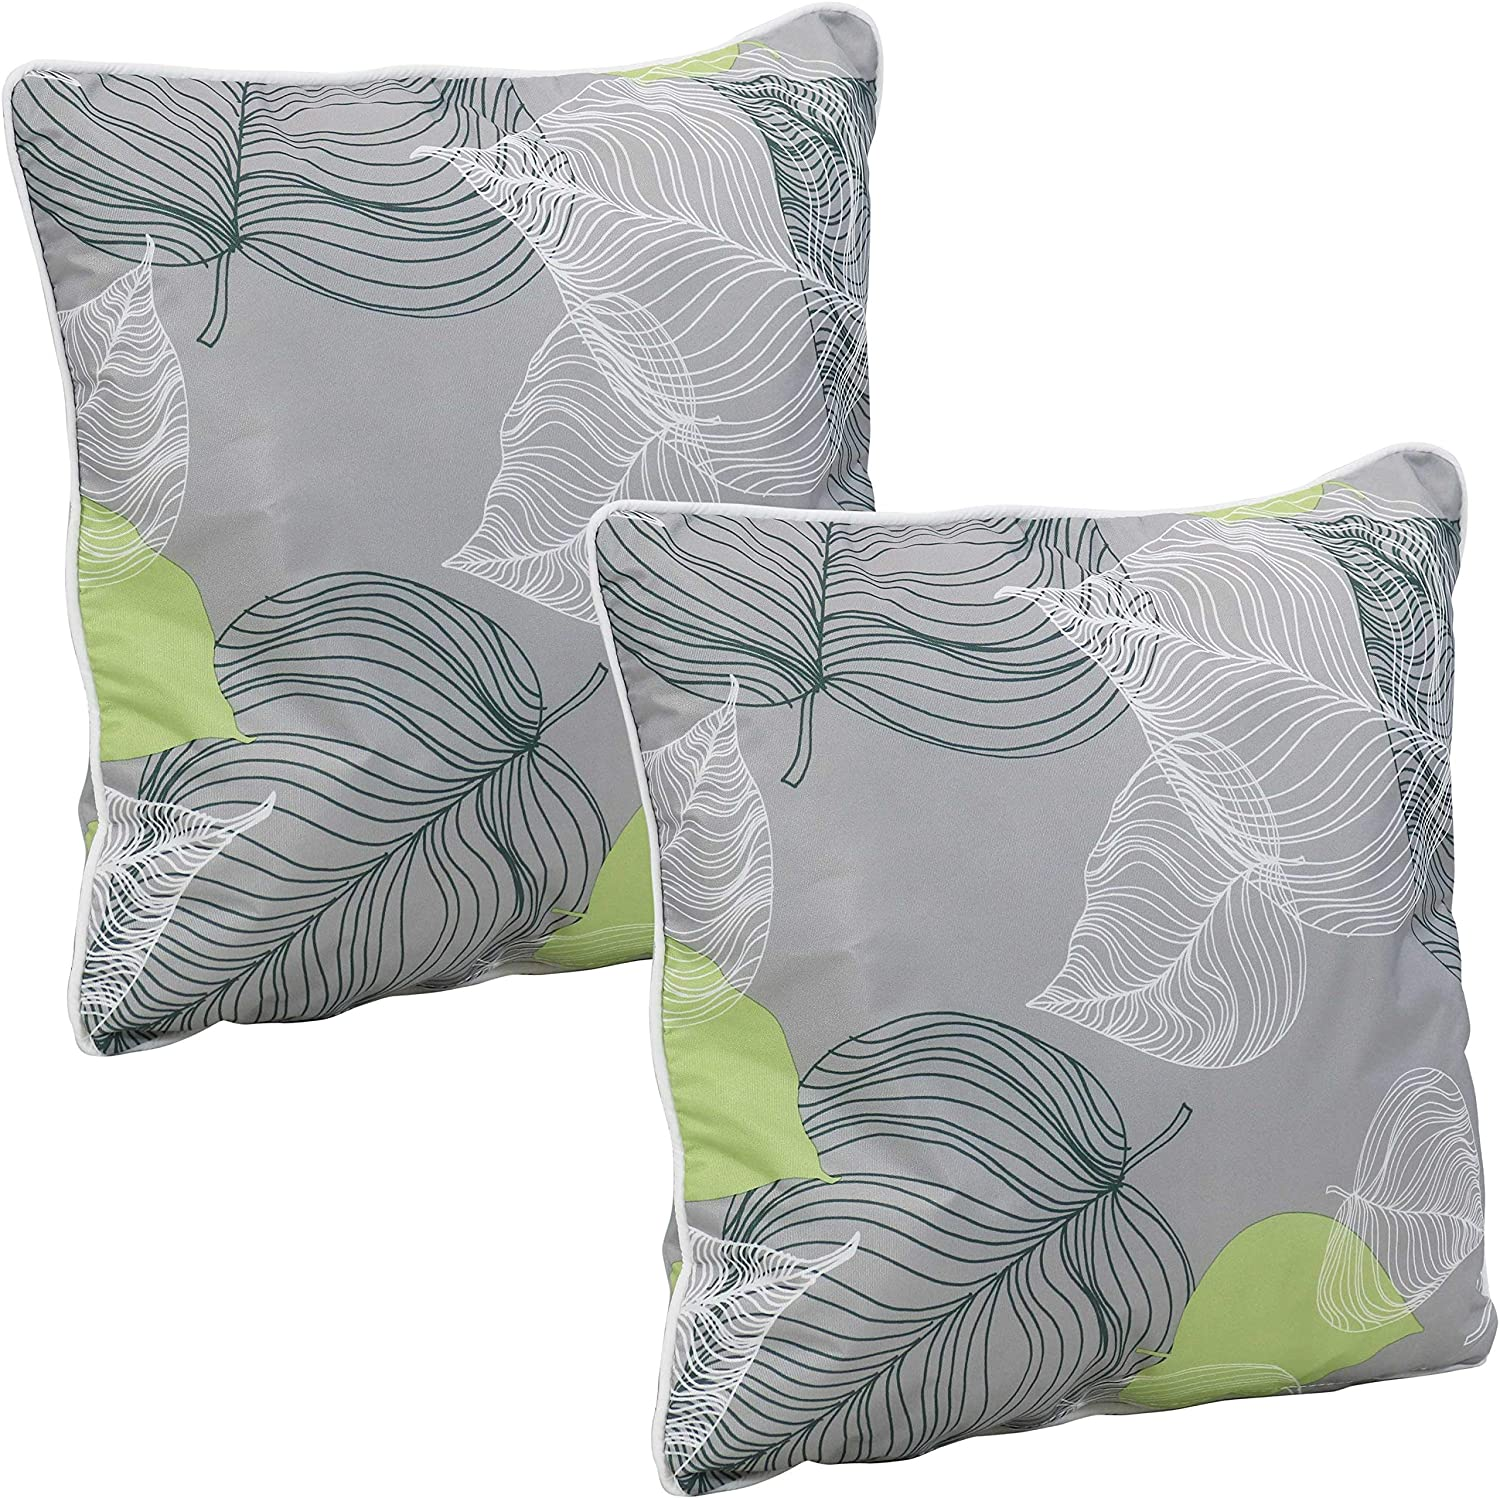 Sunnydaze Set of 2 Outdoor Decorative Throw Pillows - 16-Inch Square Accent Toss Pillows for Patio Furniture - Pillow Set for Outside Bench, Chair and Loveseat - Lush Foliage